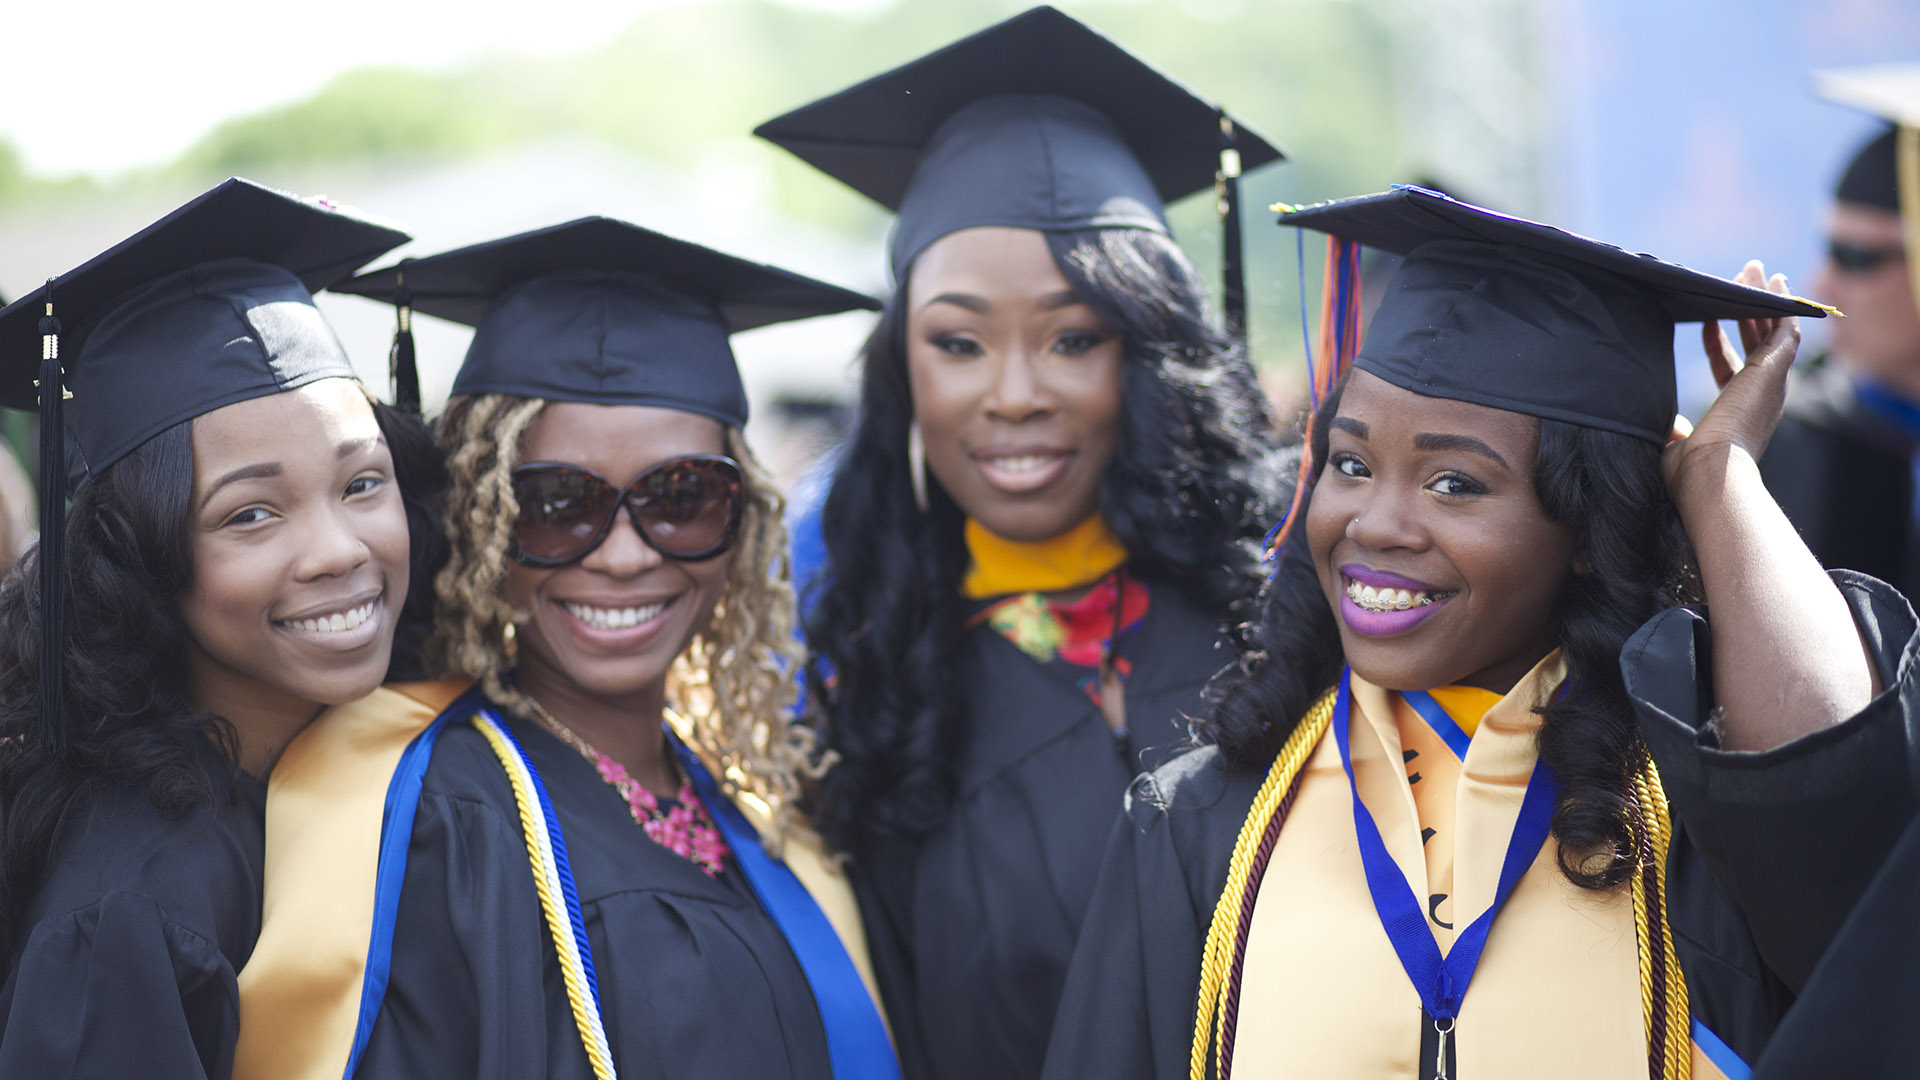 Role of historically black colleges to be examined in new film and Indie Lens screening, panel discussion